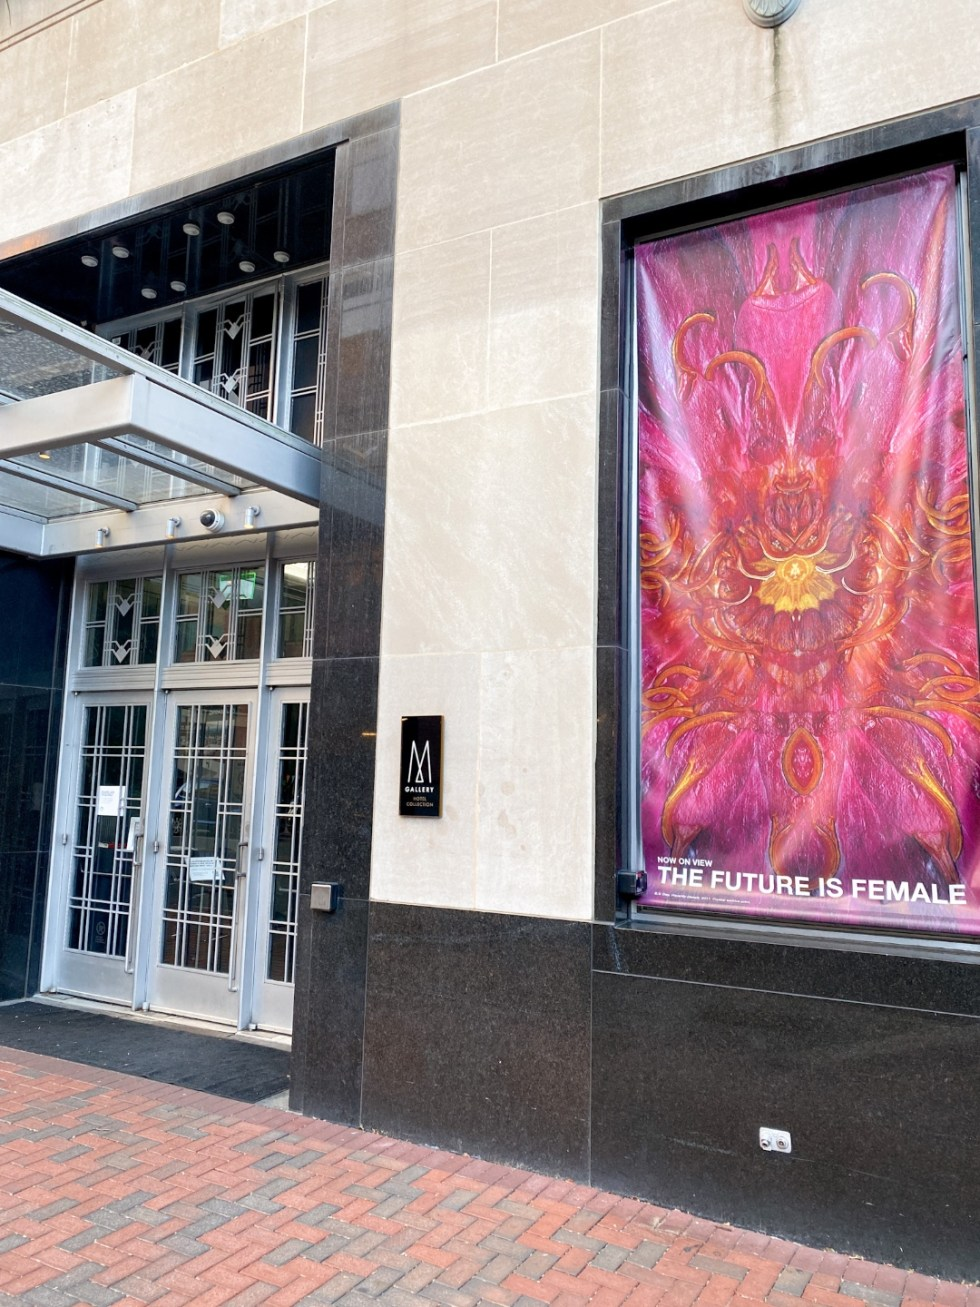 23 Awesome Things To Do in Durham - I'm Fixin' To - @imfixintoblog | Things to do in Durham by popular NC travel blog, I'm Fixin' To: image of a Durham art gallery.